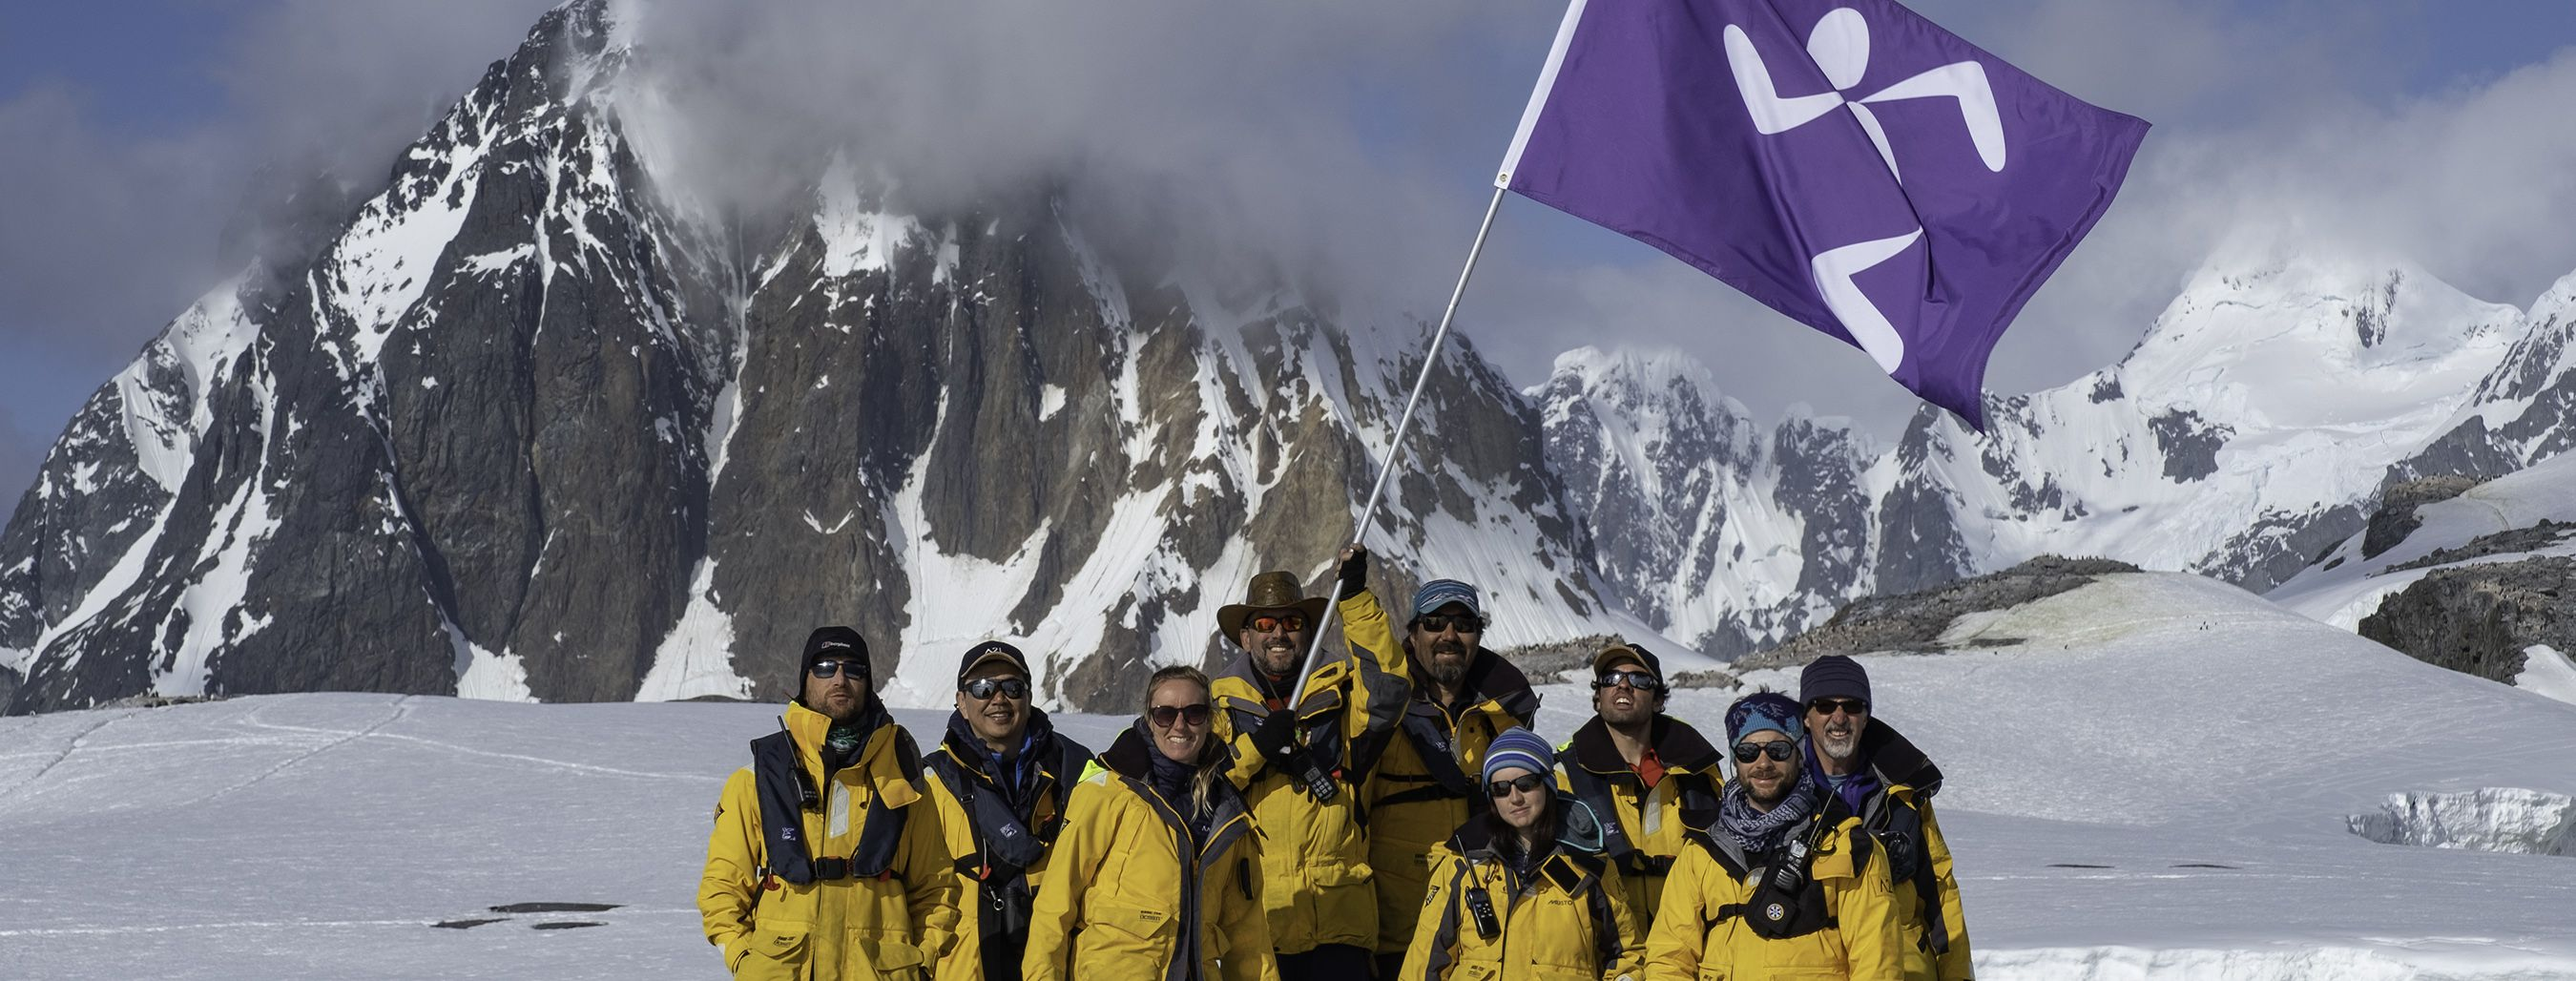 Anytime Fitness Antarctica growth makes history | Inside Franchise Business